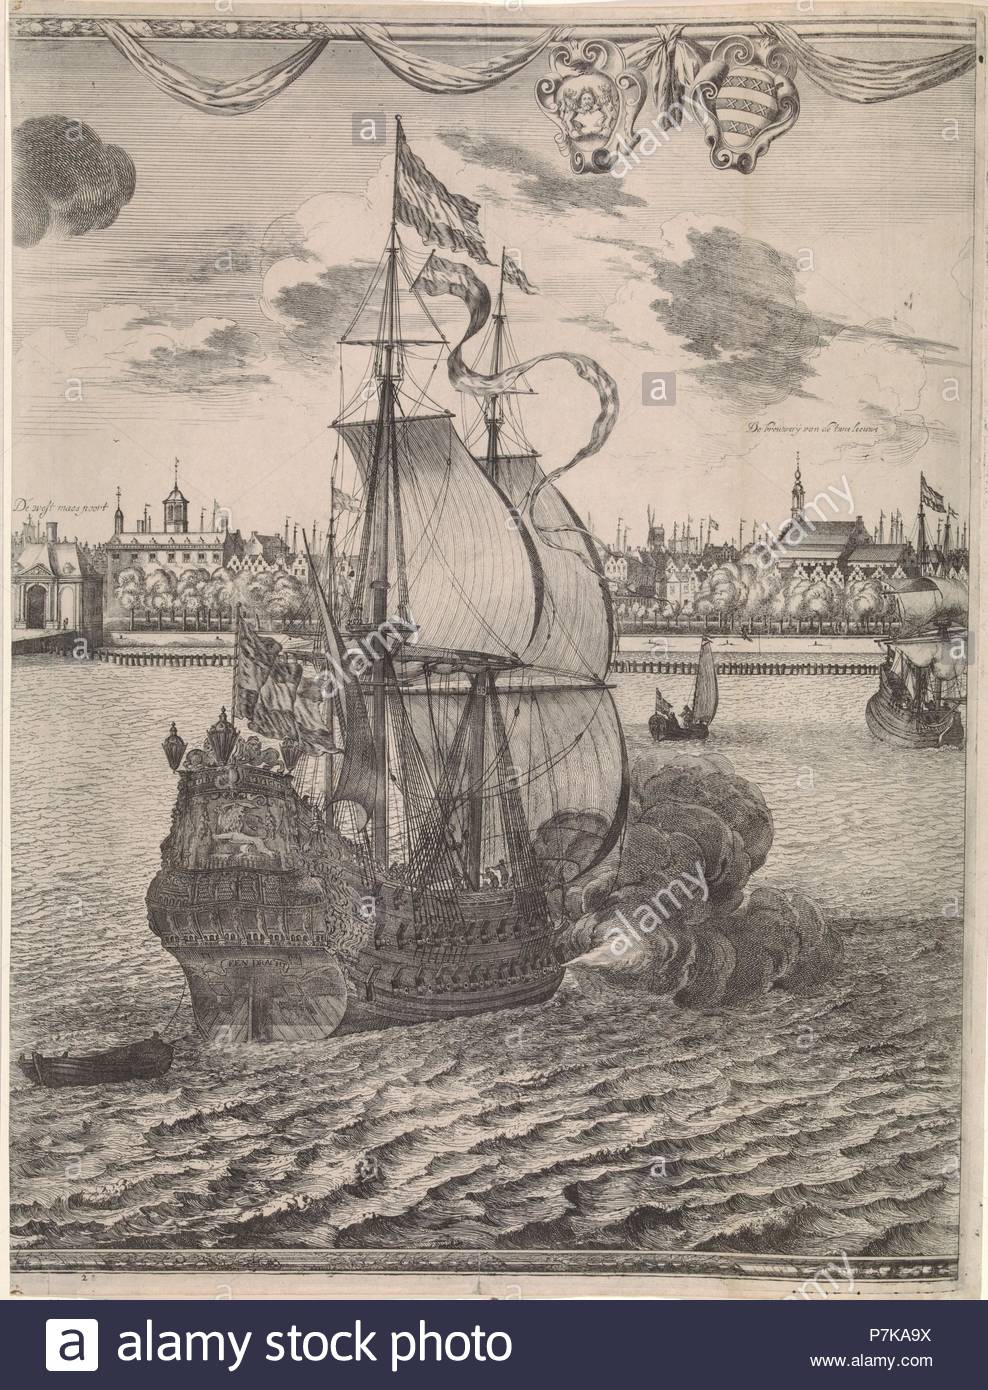 Panorama of Rotterdam, The Netherlands, print maker: attributed to Joost van Geel, Jan Houwens I, 1665. - Stock Image